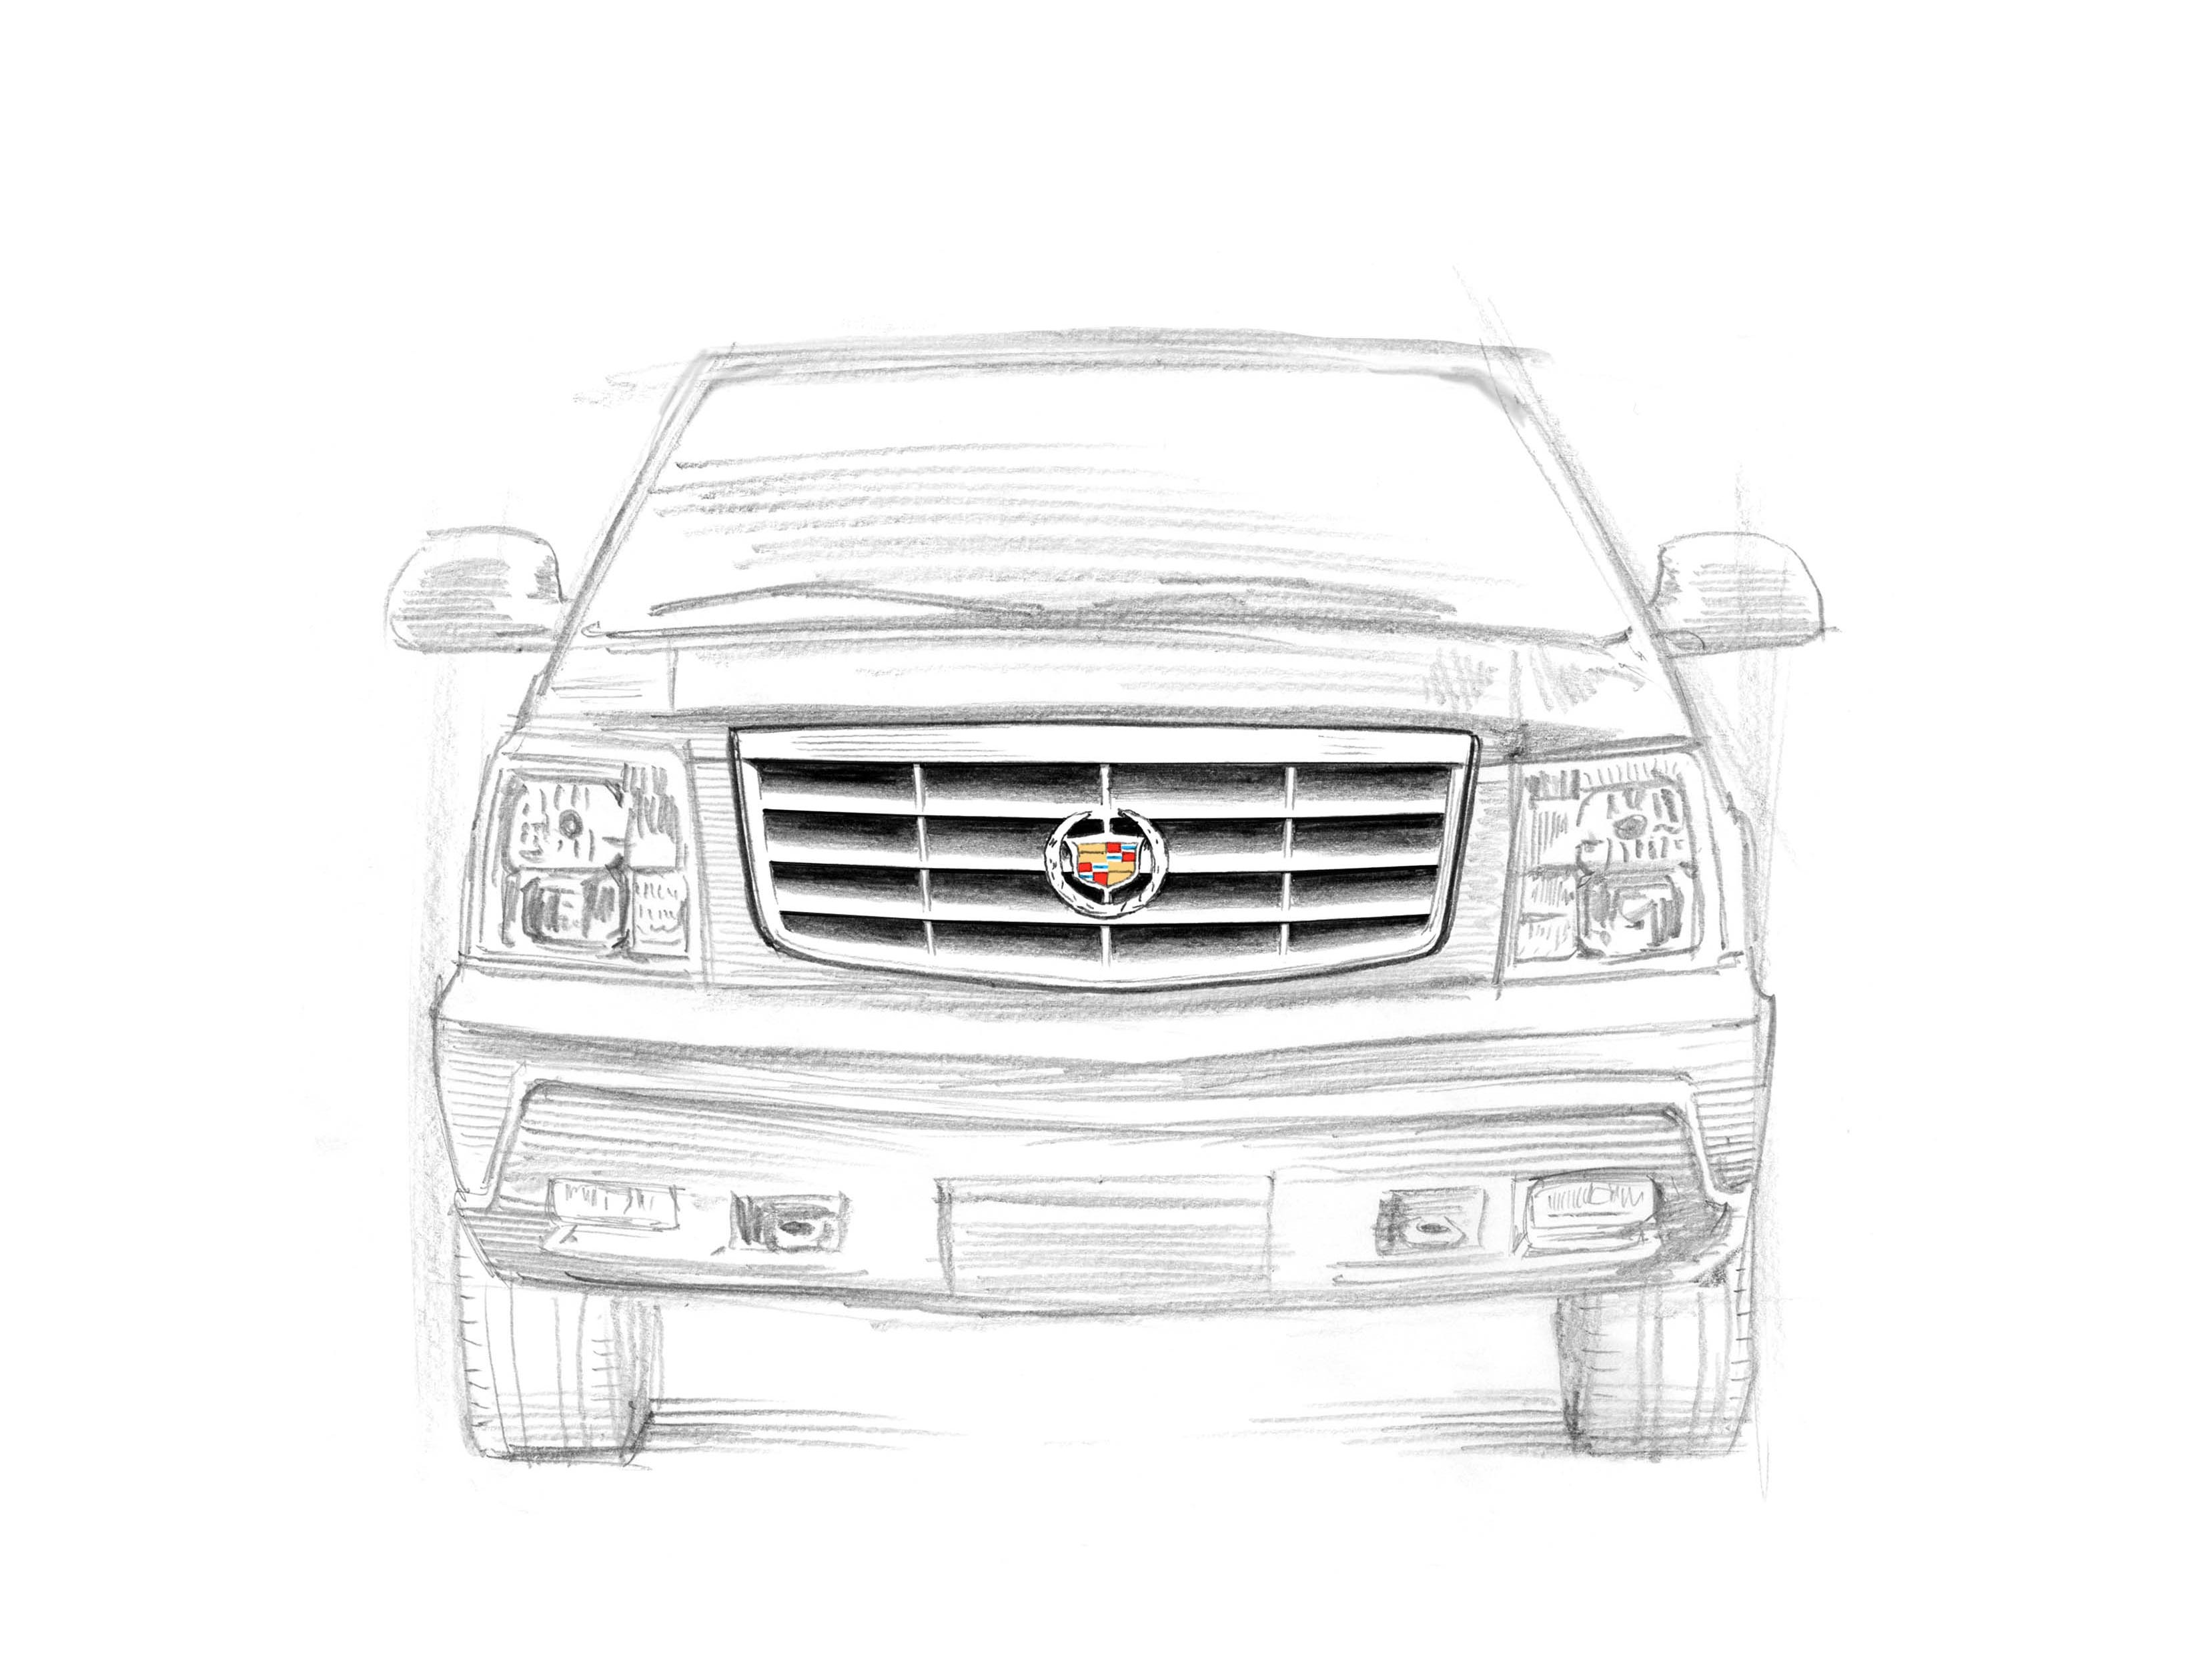 Cadillac Escalade Gen 2, 2002-2006: The Escalade became a must-have accessory for athletes and musicians, its deluxe looks inspiring numerous song lyrics. 20th anniversary Escalade sketch drawn by award-winning illustrator Joe McKendry.